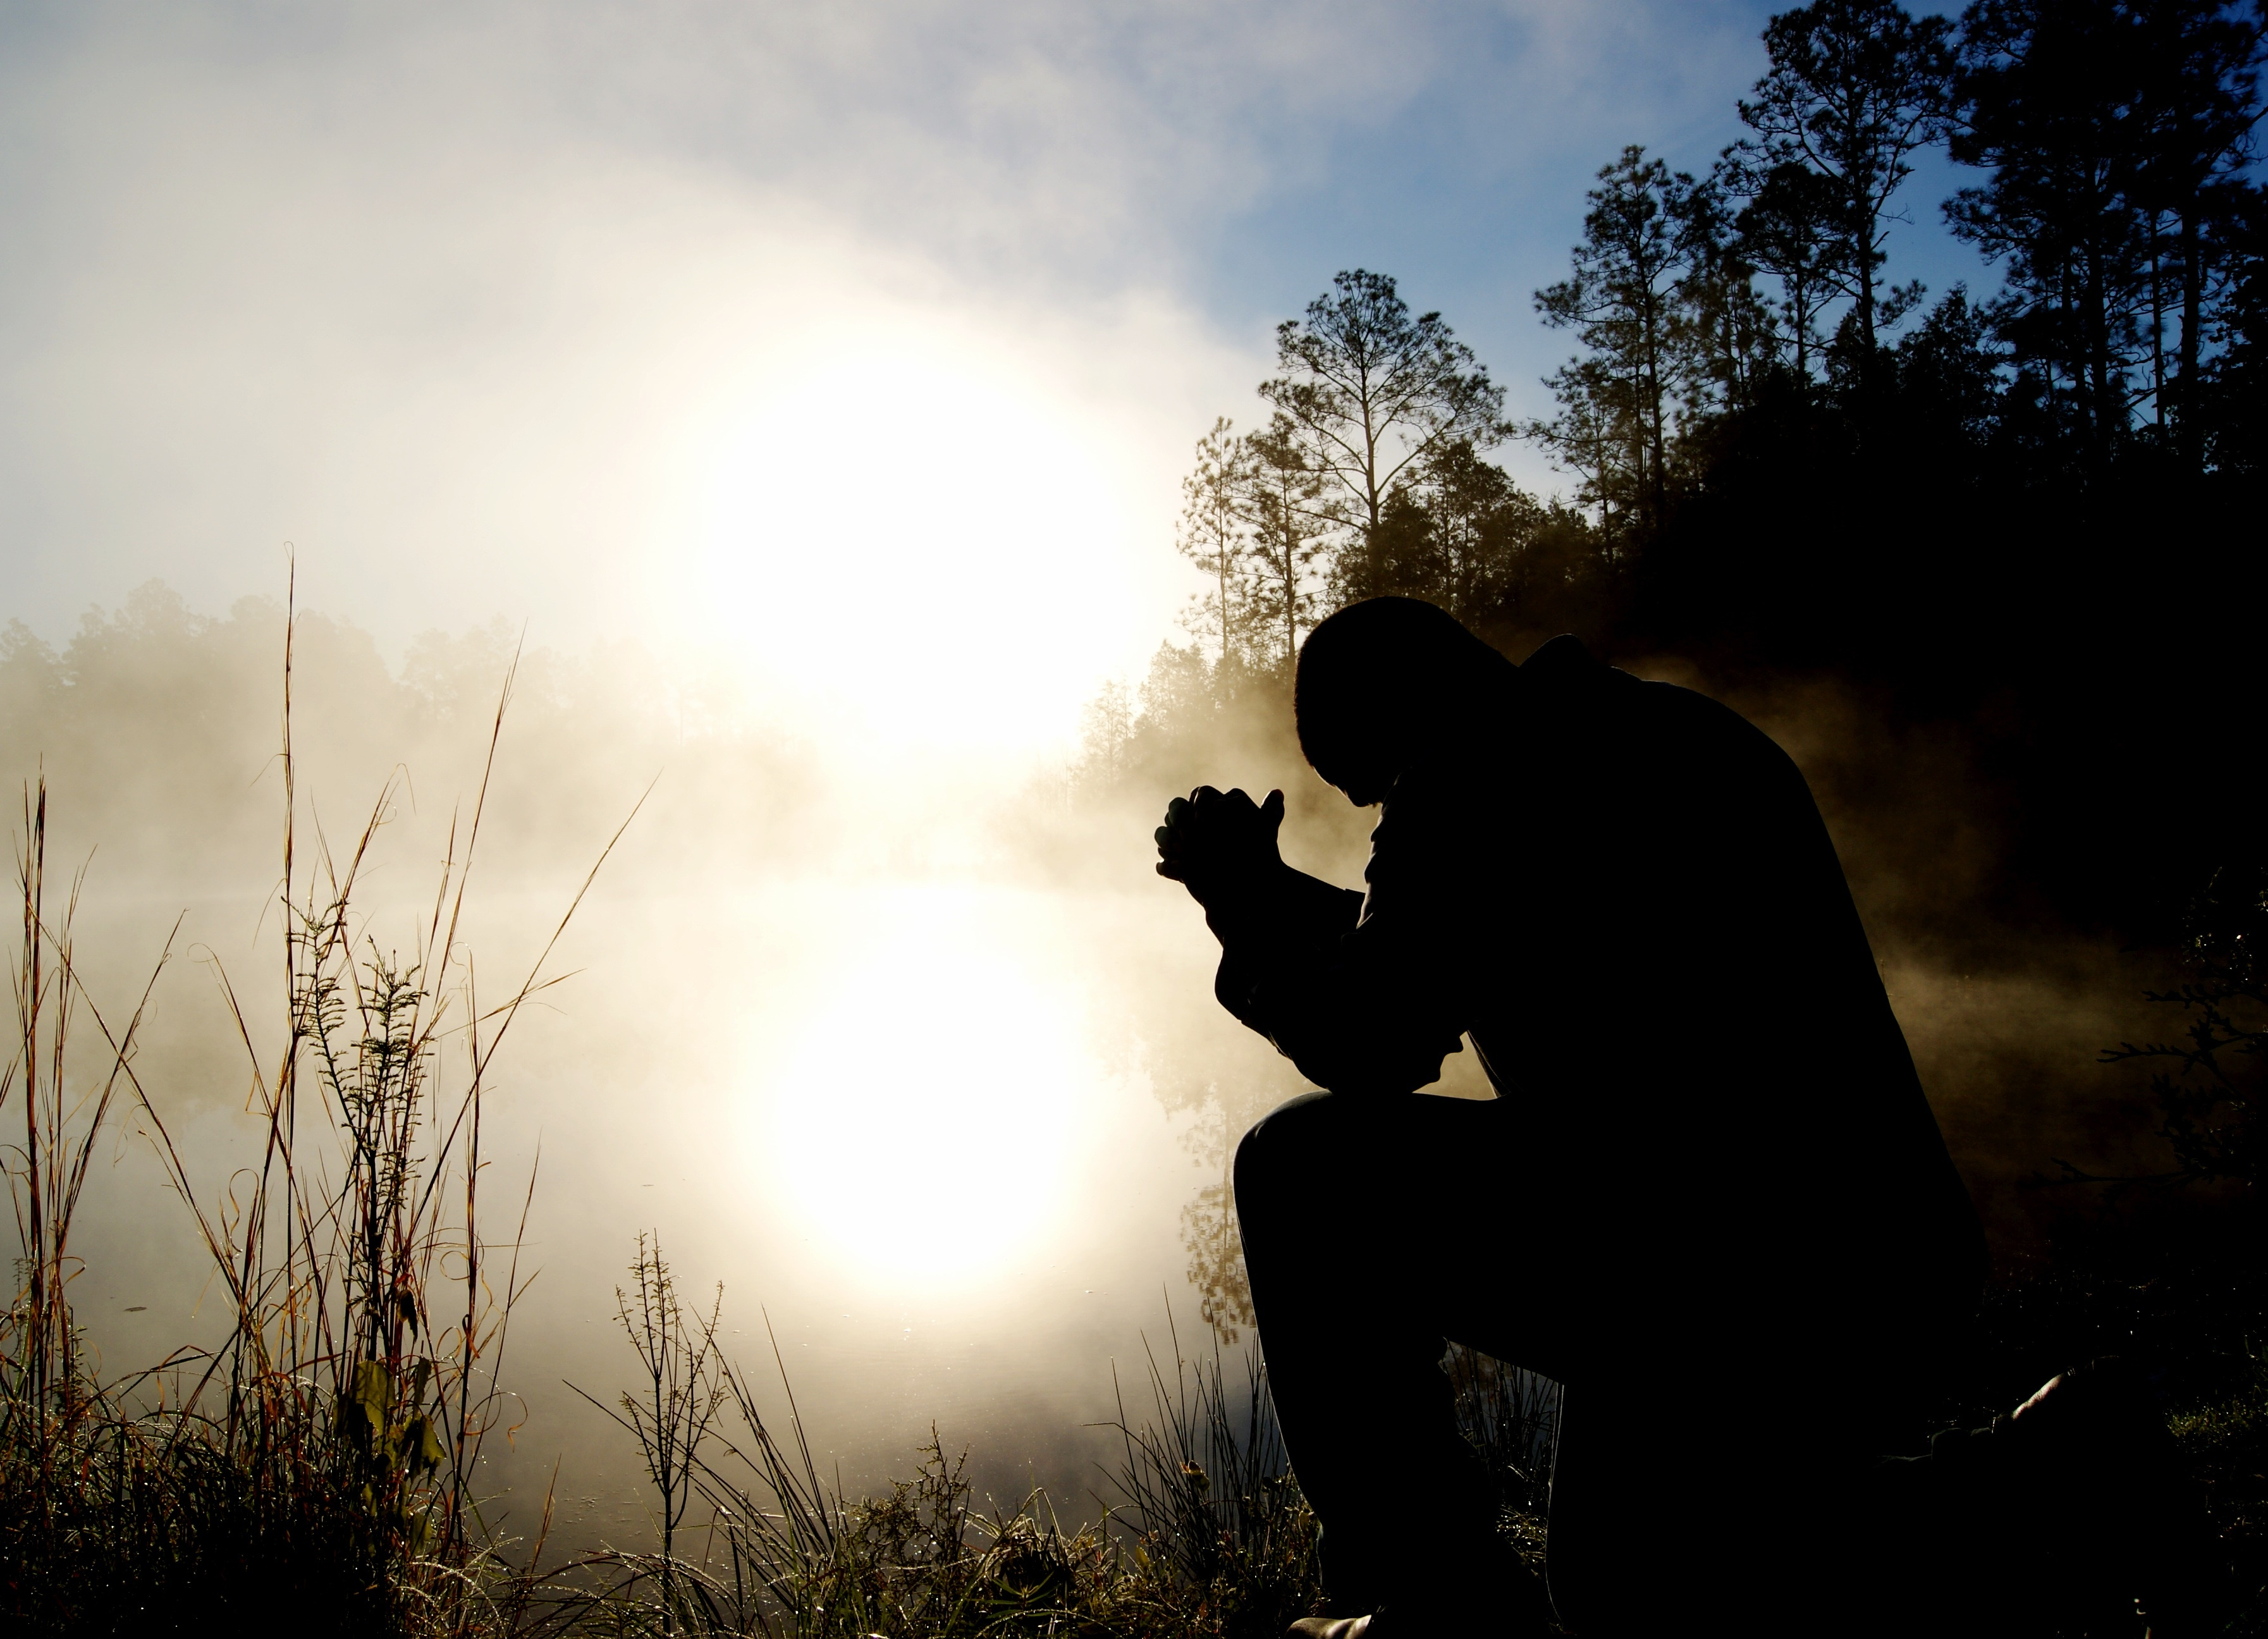 A man praying outside by a field lit by the morning sun.